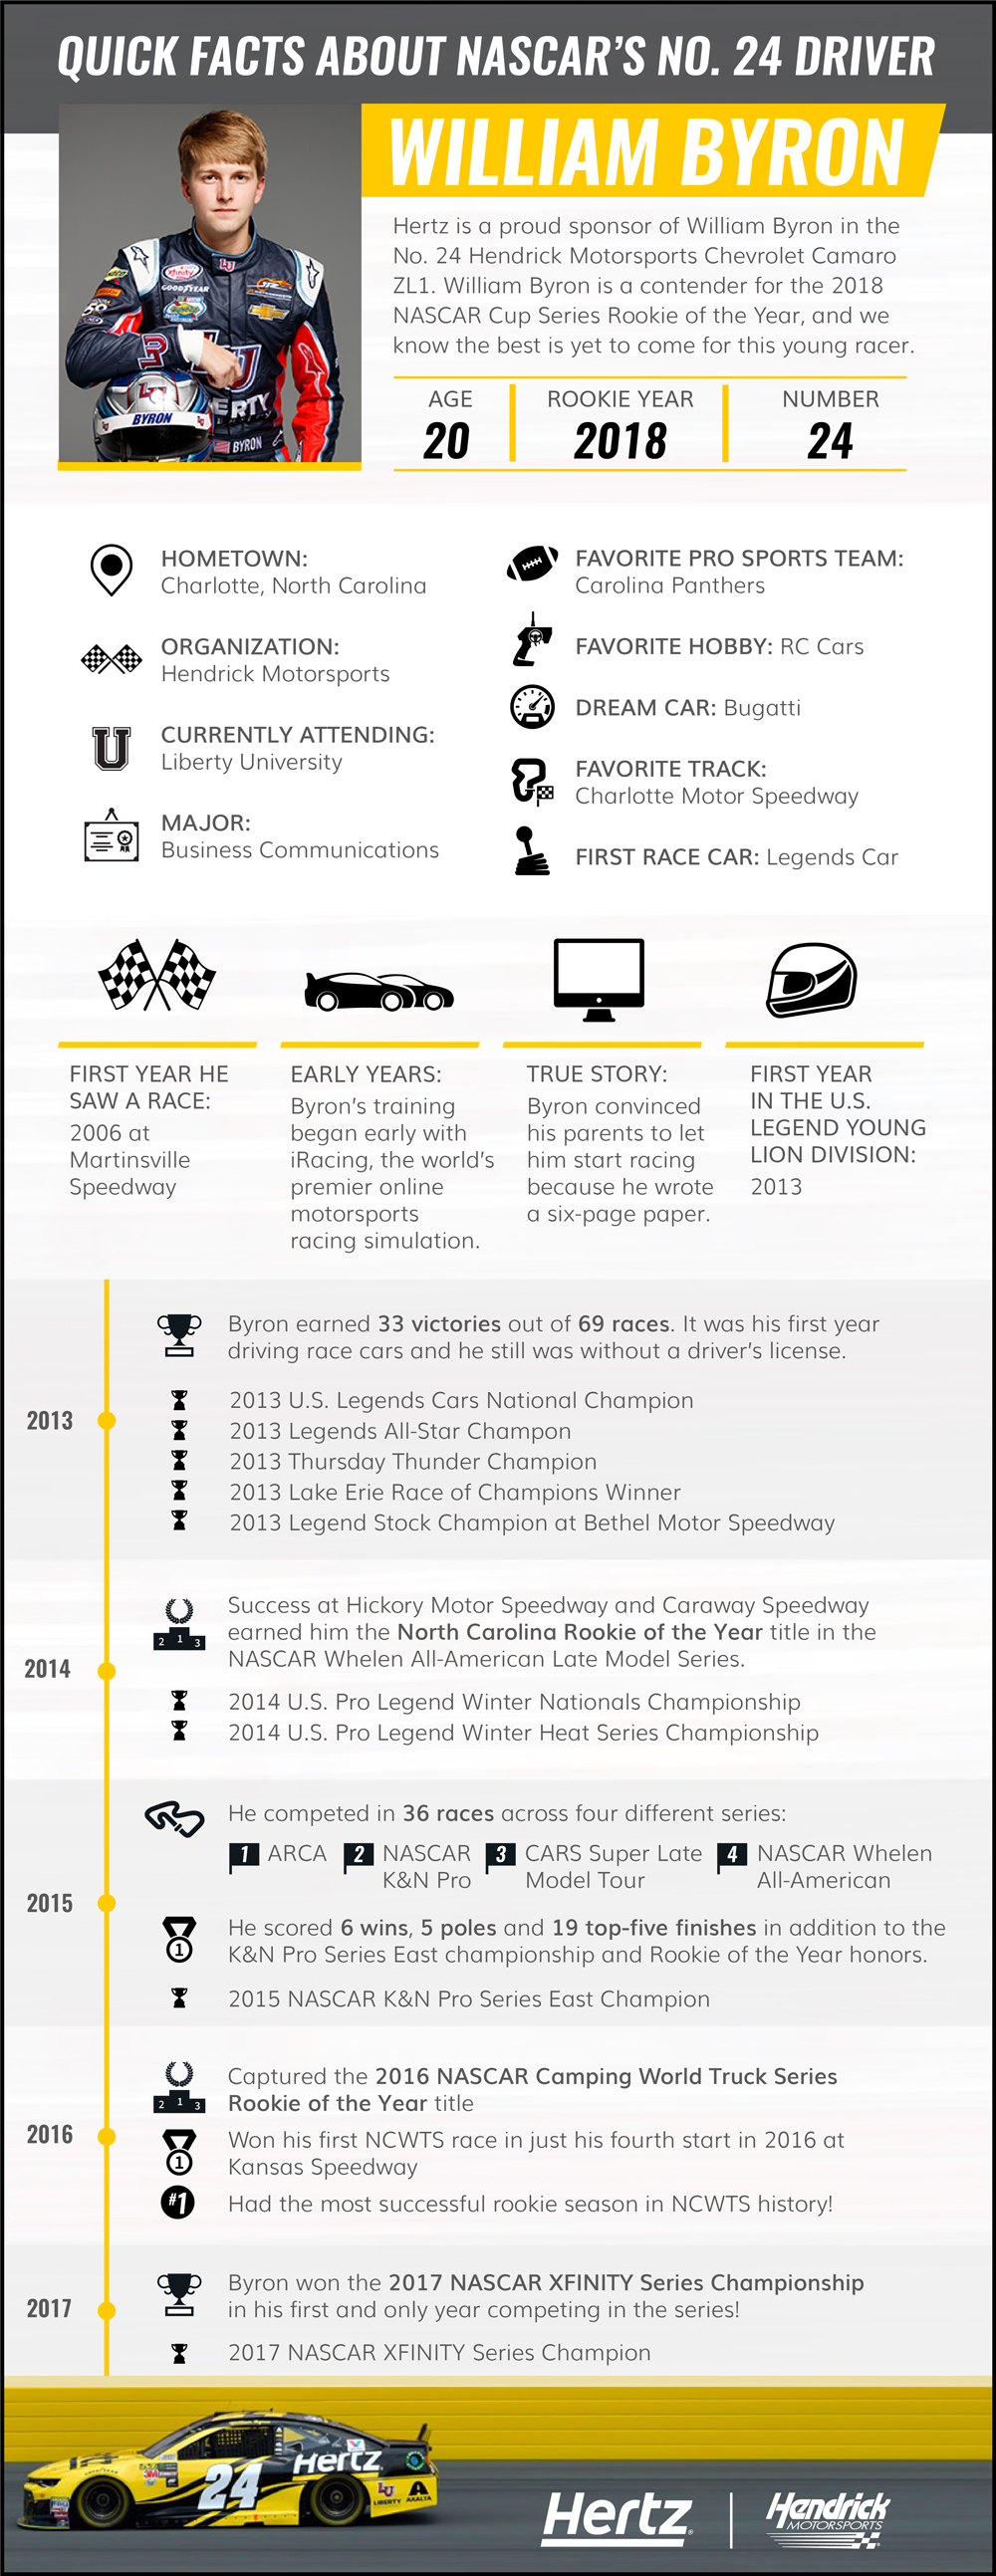 William Byron infographic featuring various statistics about the background, and racing history of this rookie driver